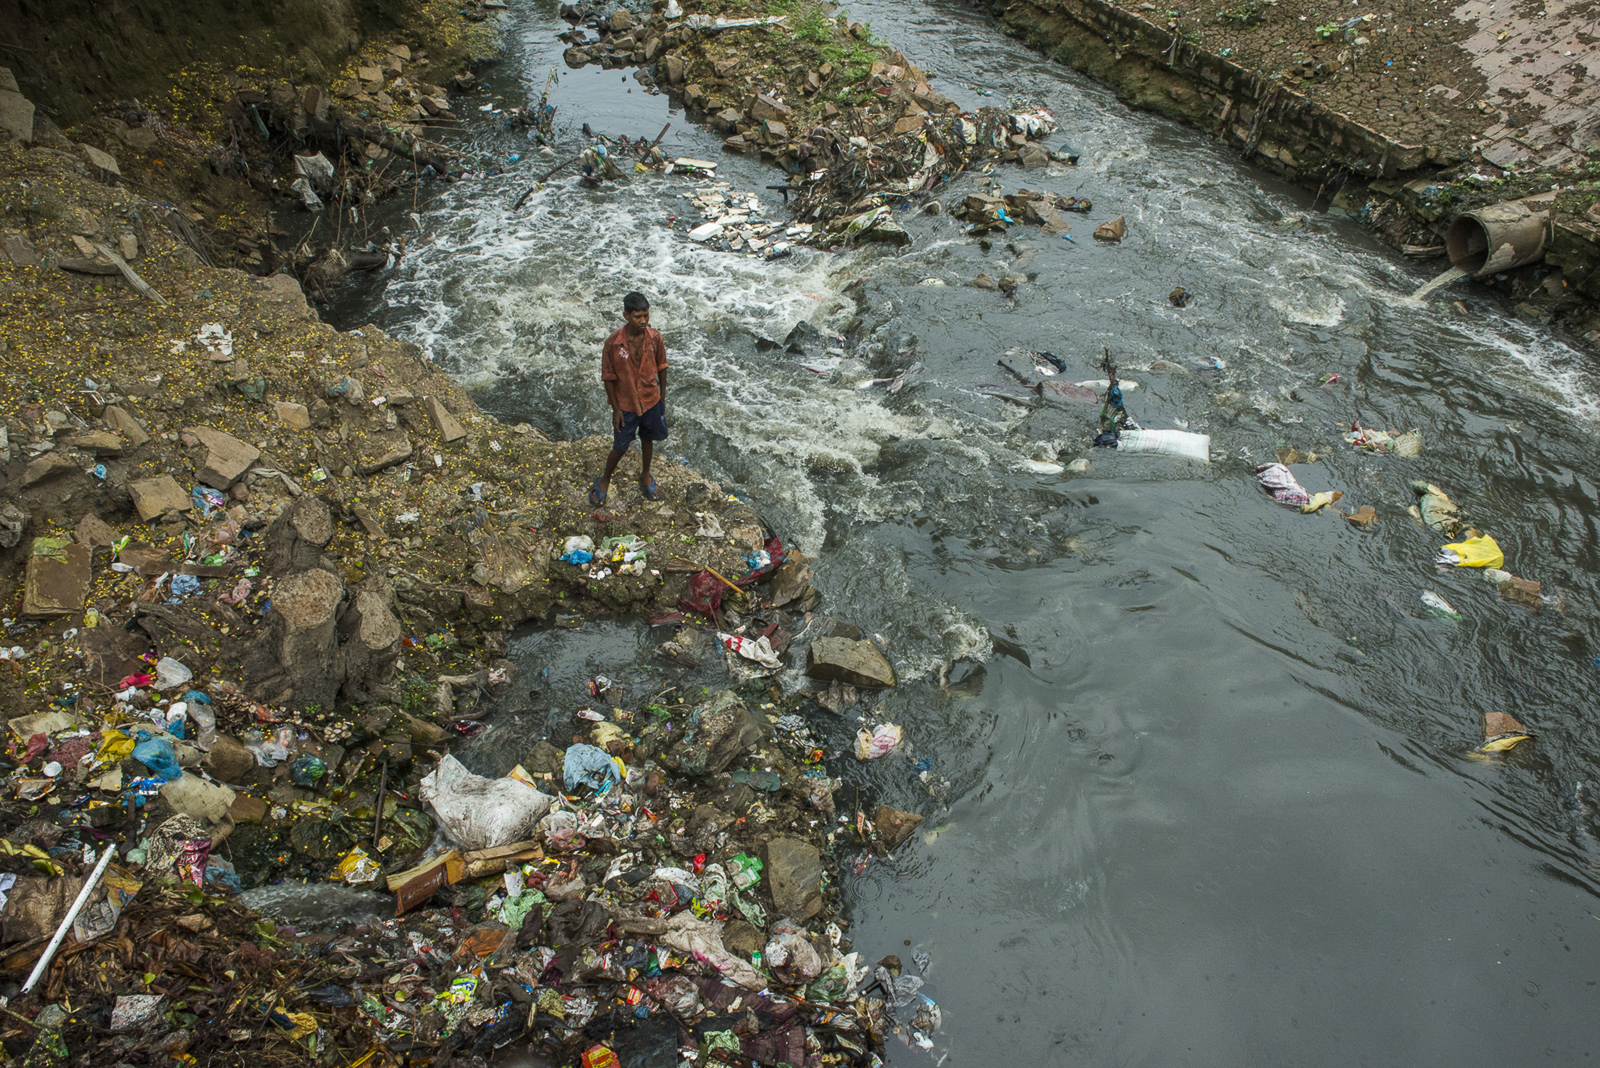 A young man stands amidst a pile of trash in a sewage-tributary to the Ganges at Varanasi, Uttar Pradesh, India. Photo © Pete McBride.